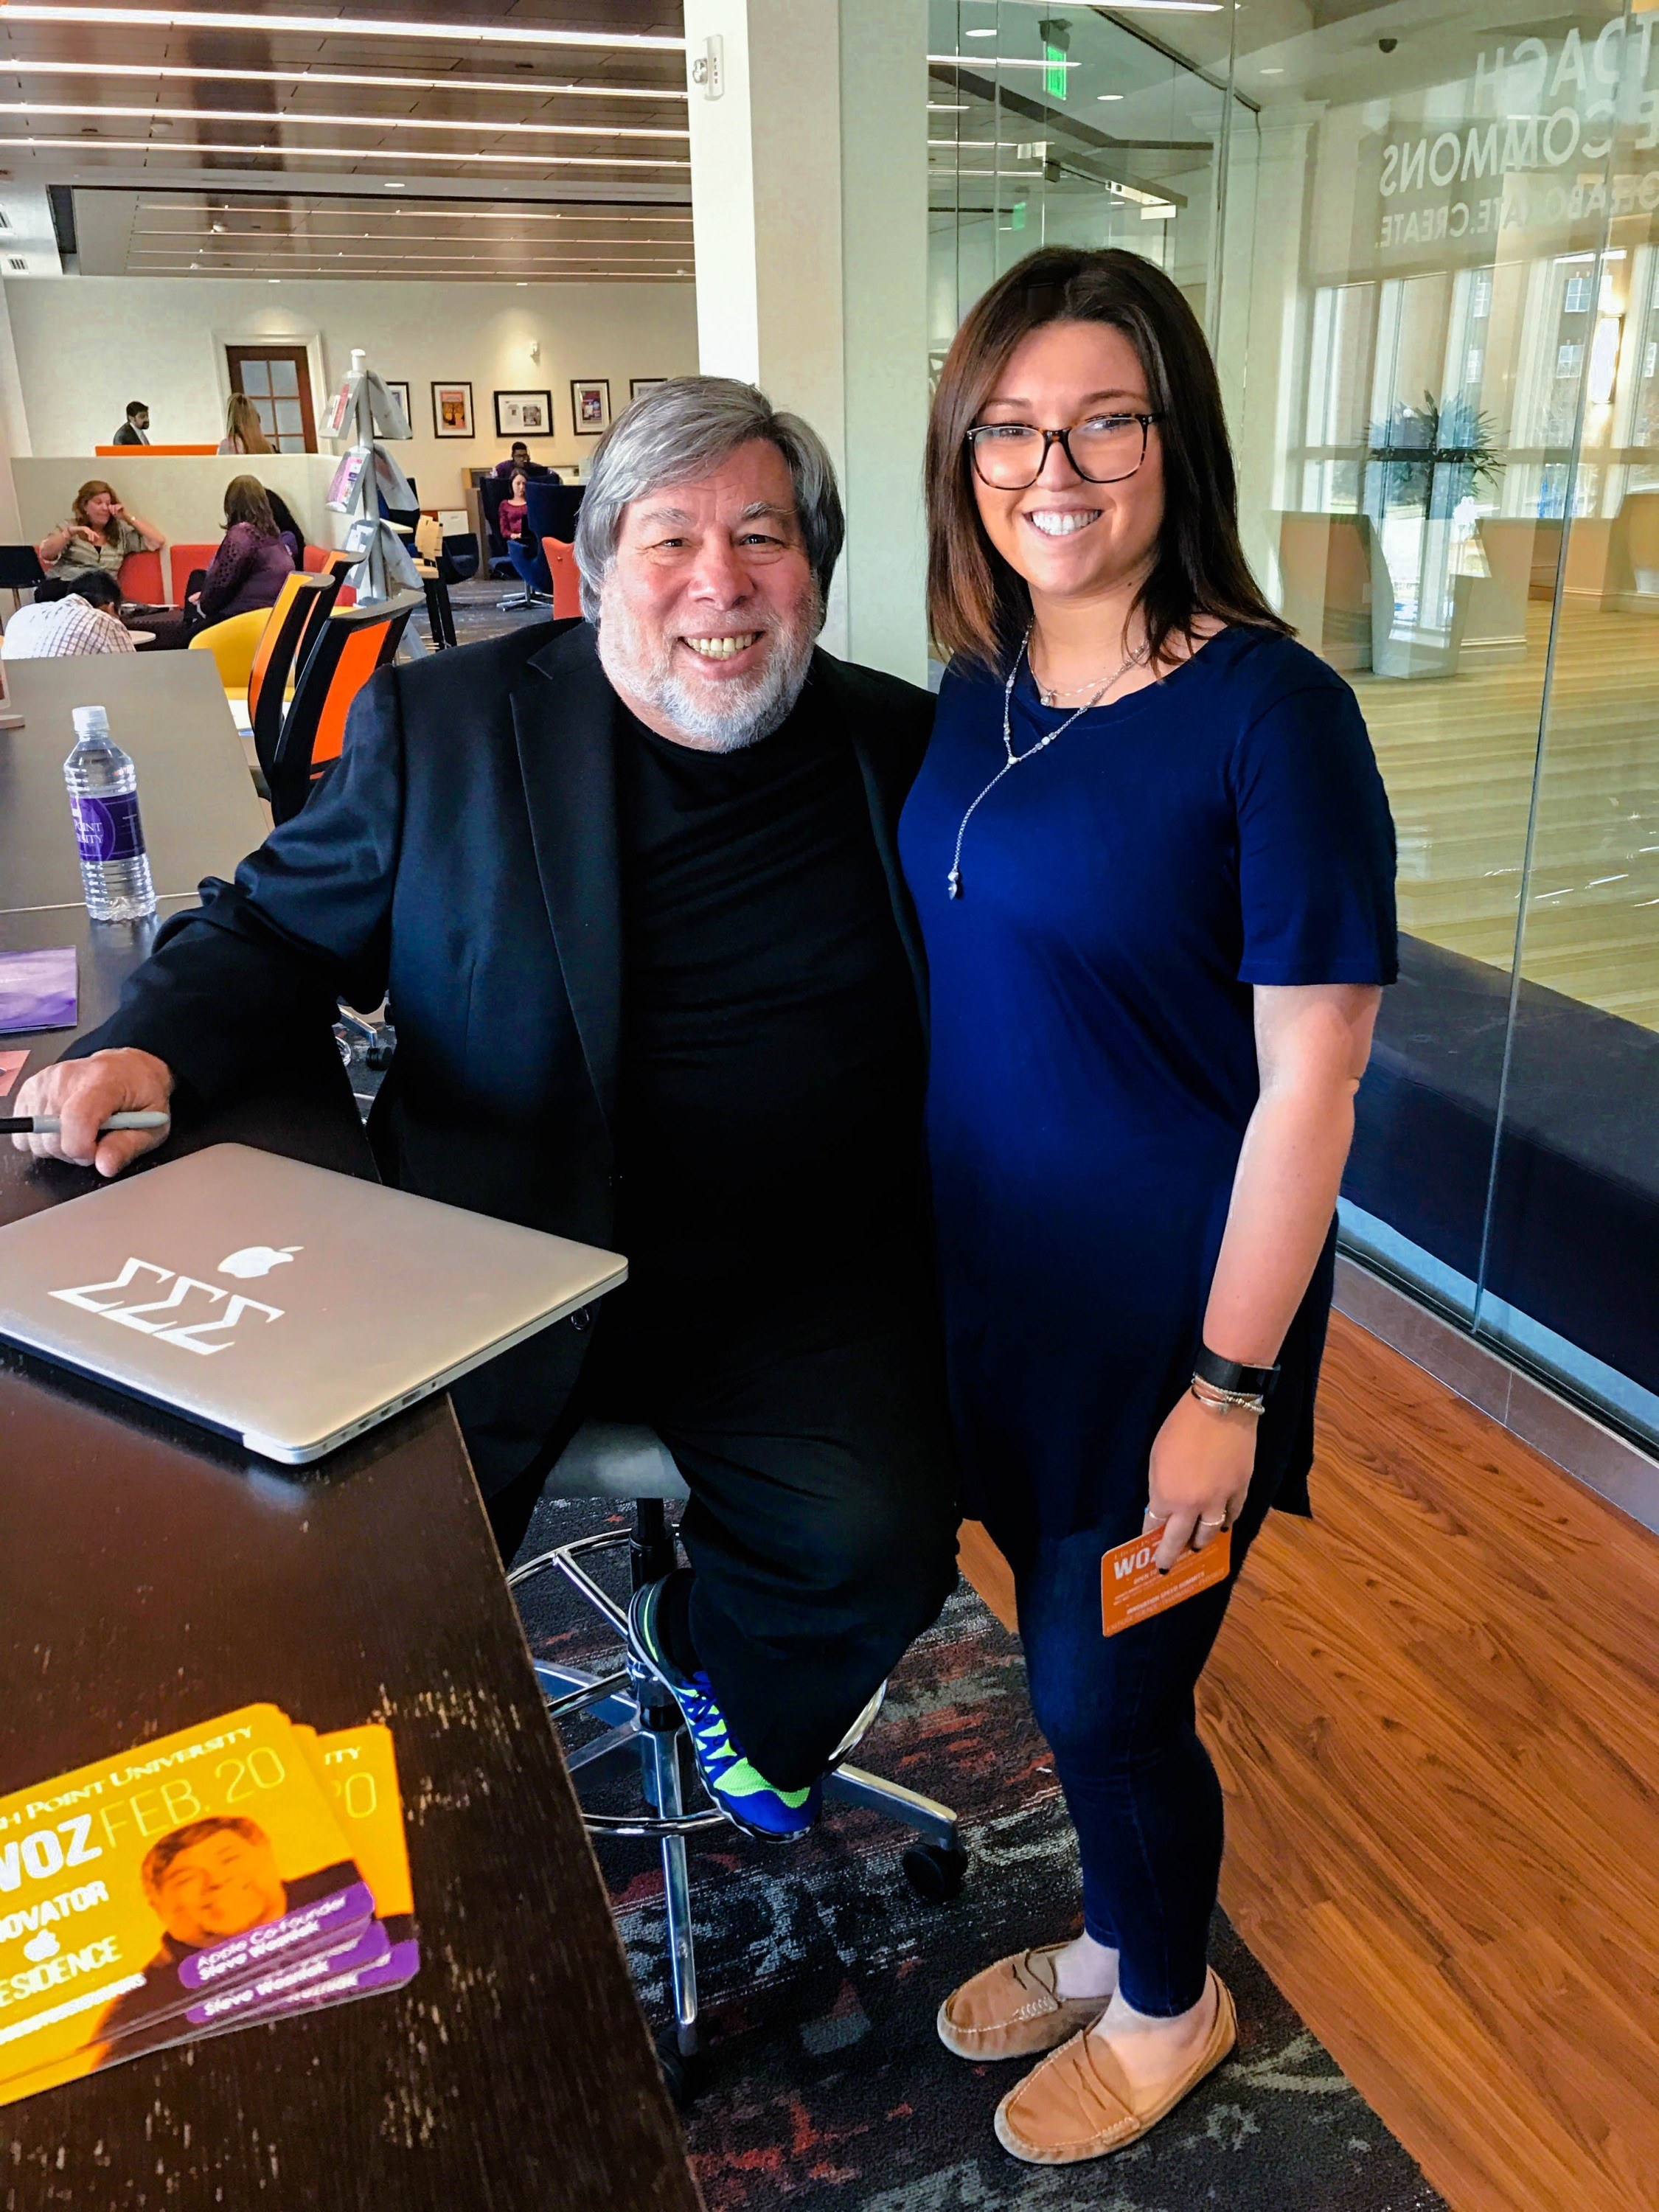 Hannah Chazin Meets Apple Computer Co-Founder Steve Wozniak